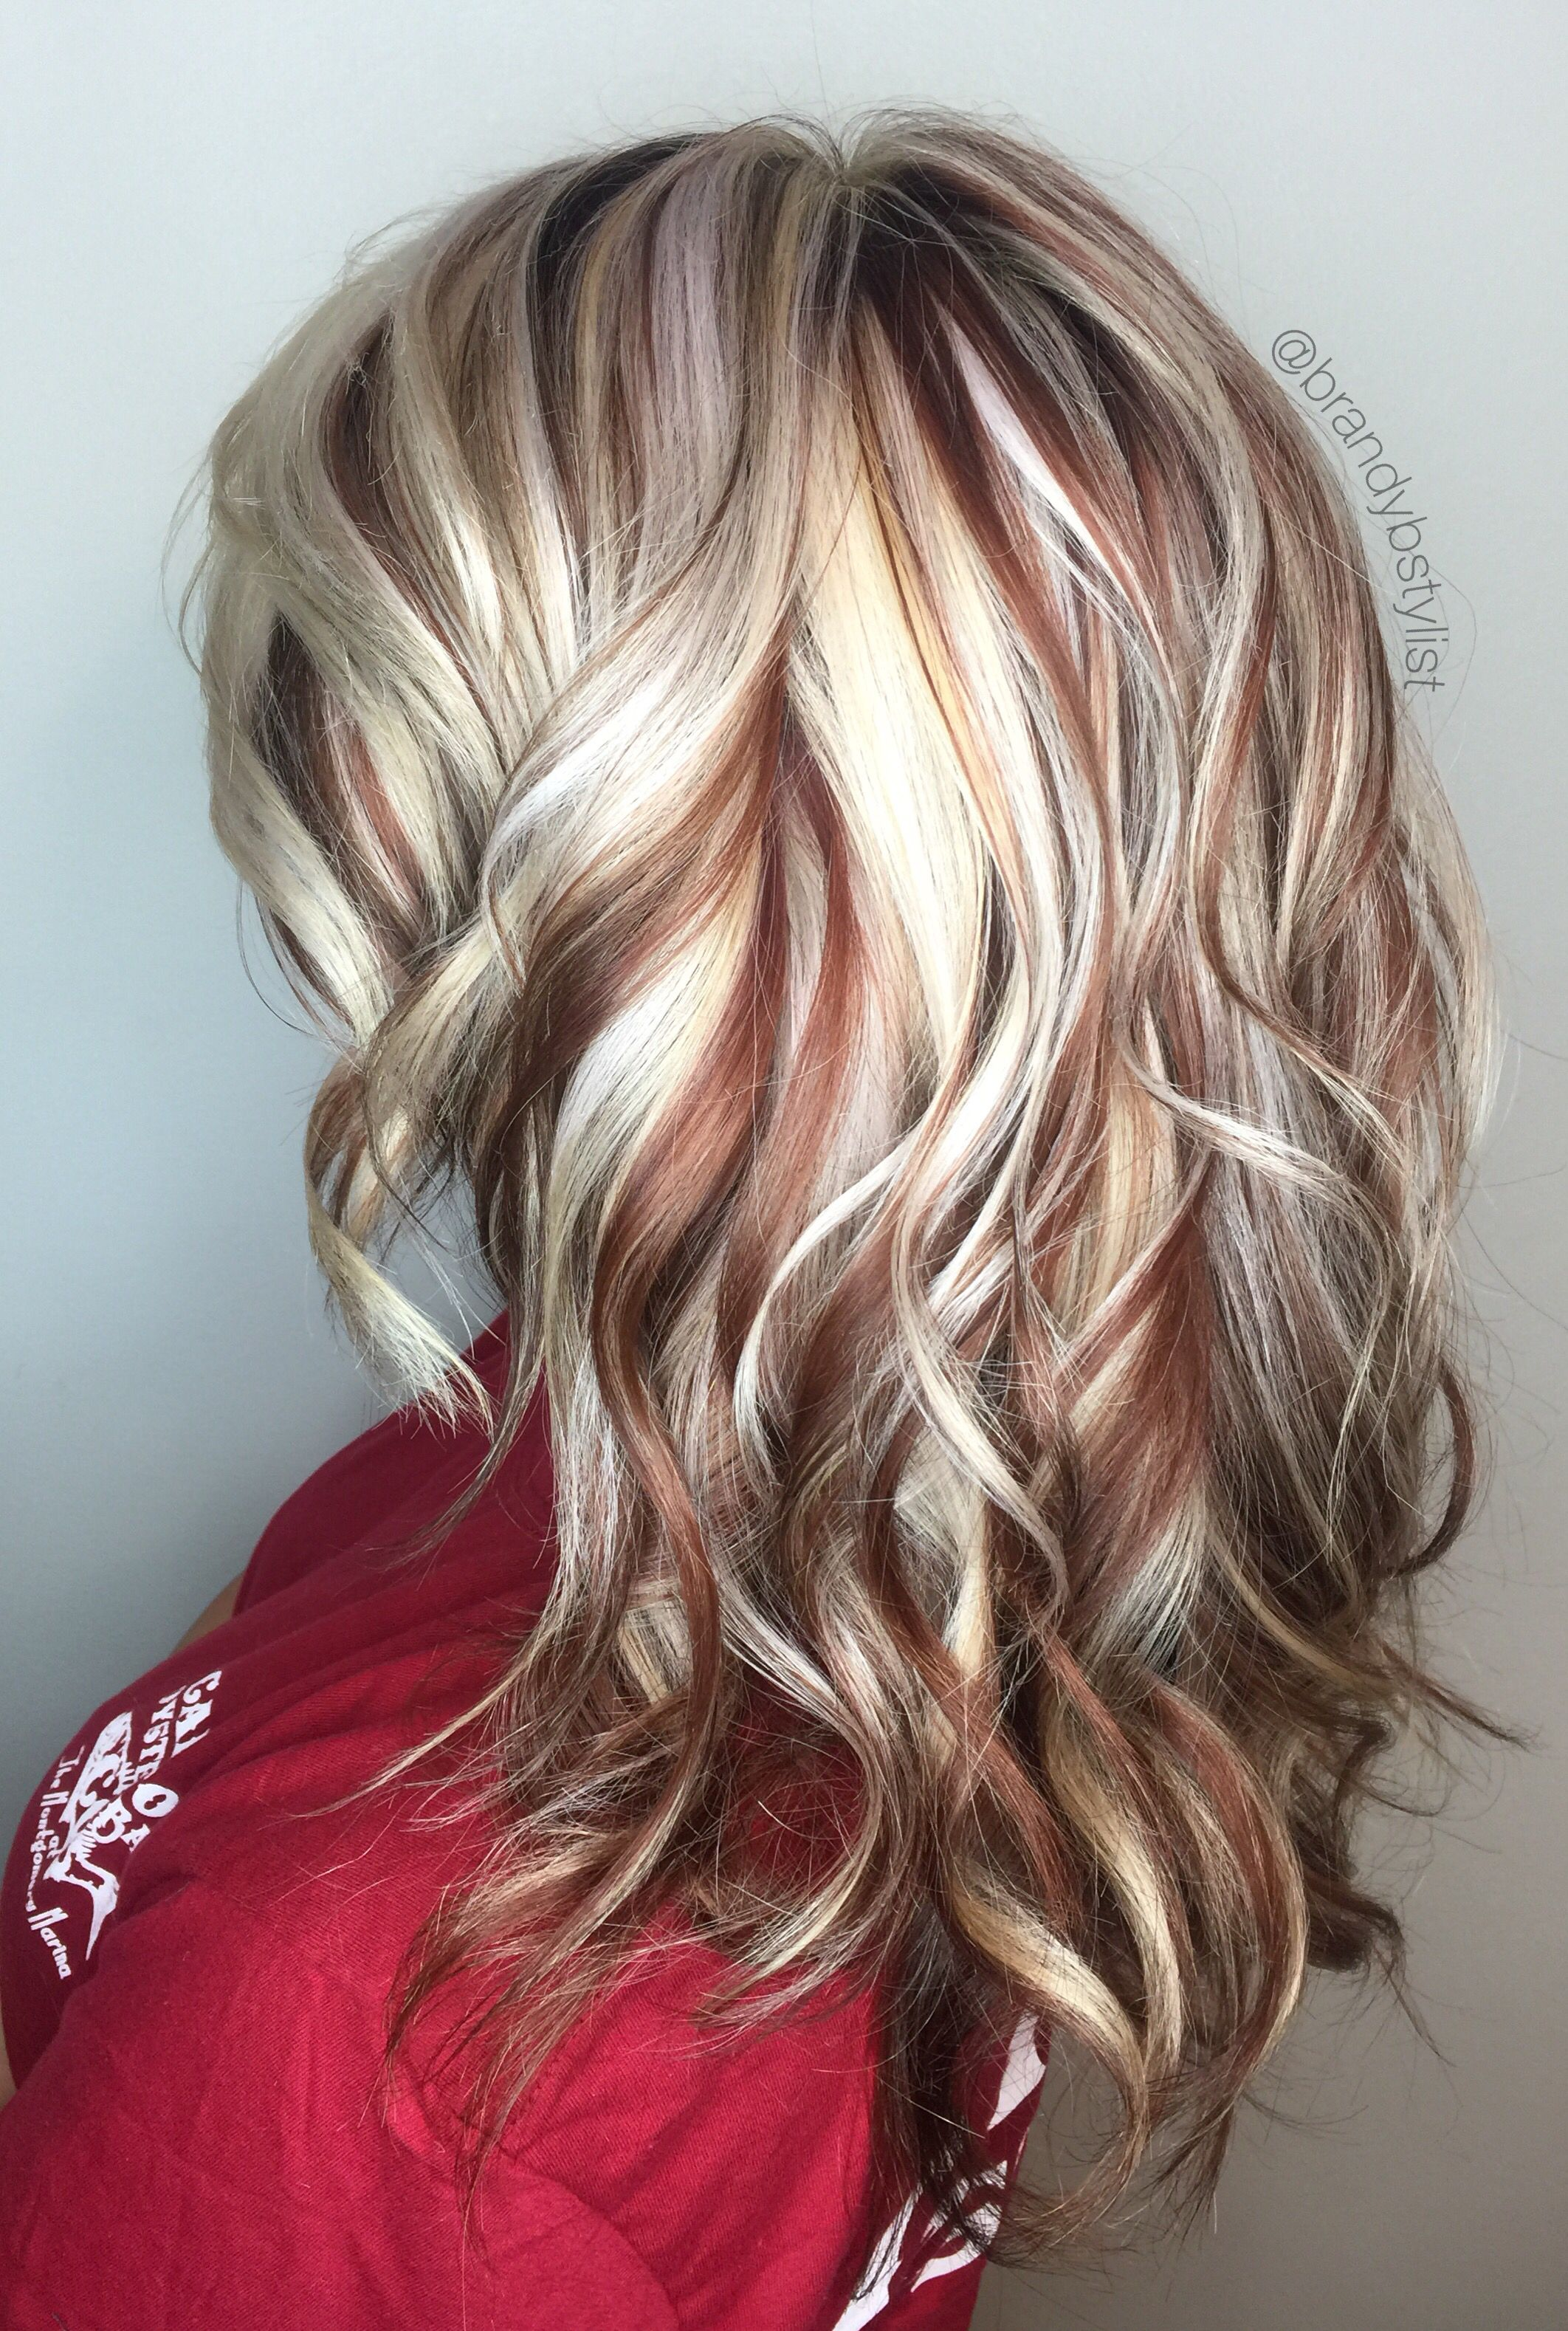 Blonde and red highlights highlights lowlights copper lowlight hair